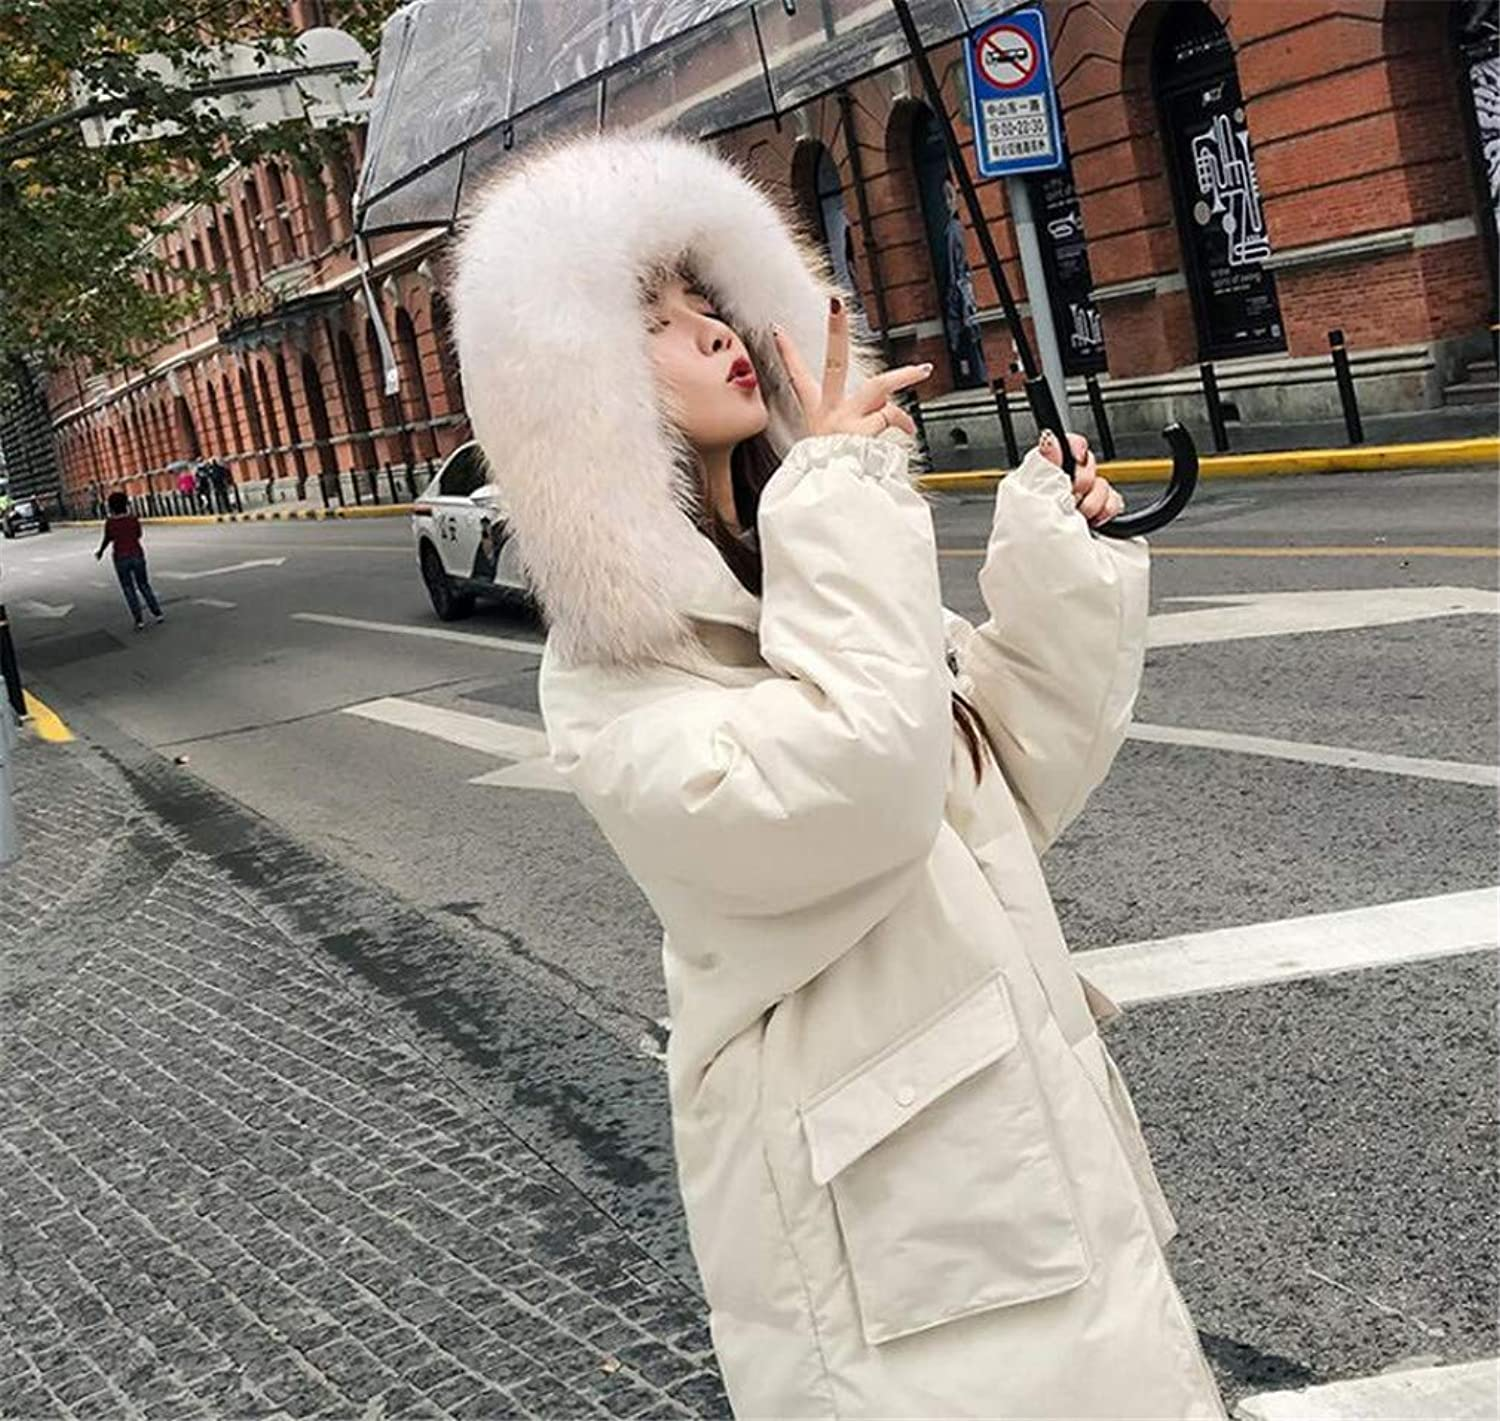 Women Down Coat Down, Europe and America Medium and Long Section Slim Fit Thicken White Duck Down Padding Hooded Down Jacket